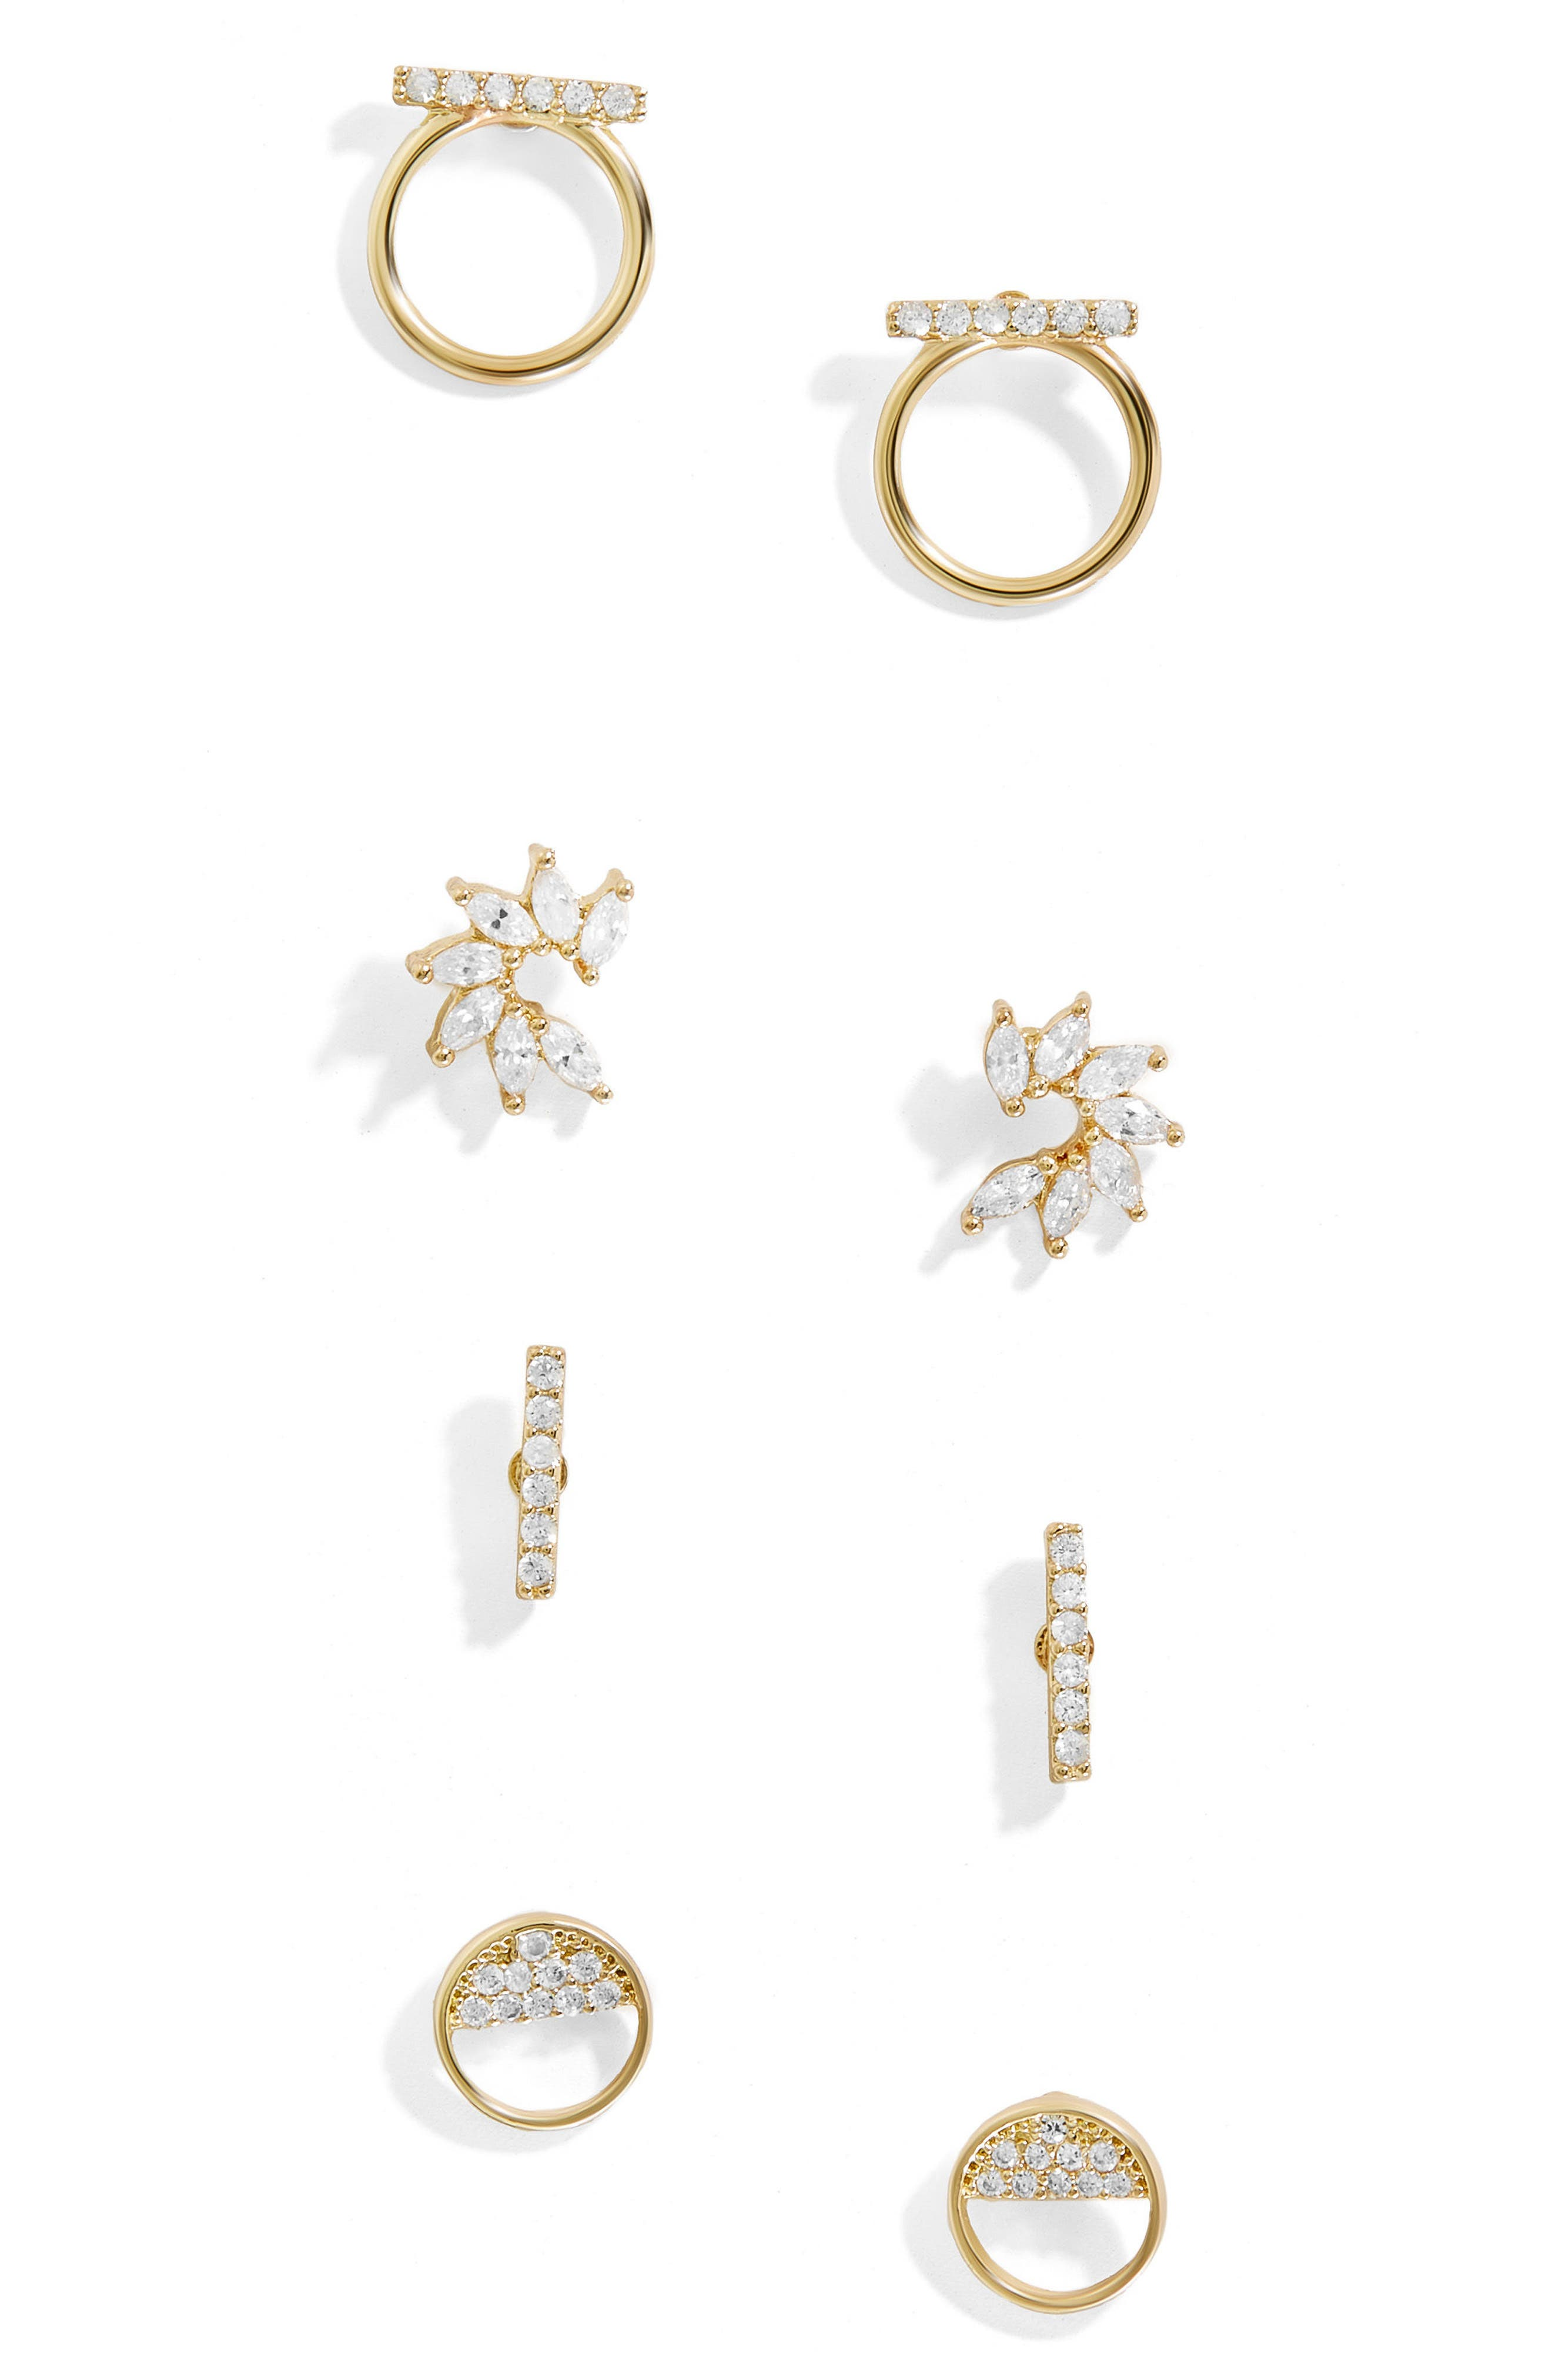 Delicate Set of 4 Stud Earrings,                             Main thumbnail 1, color,                             Gold